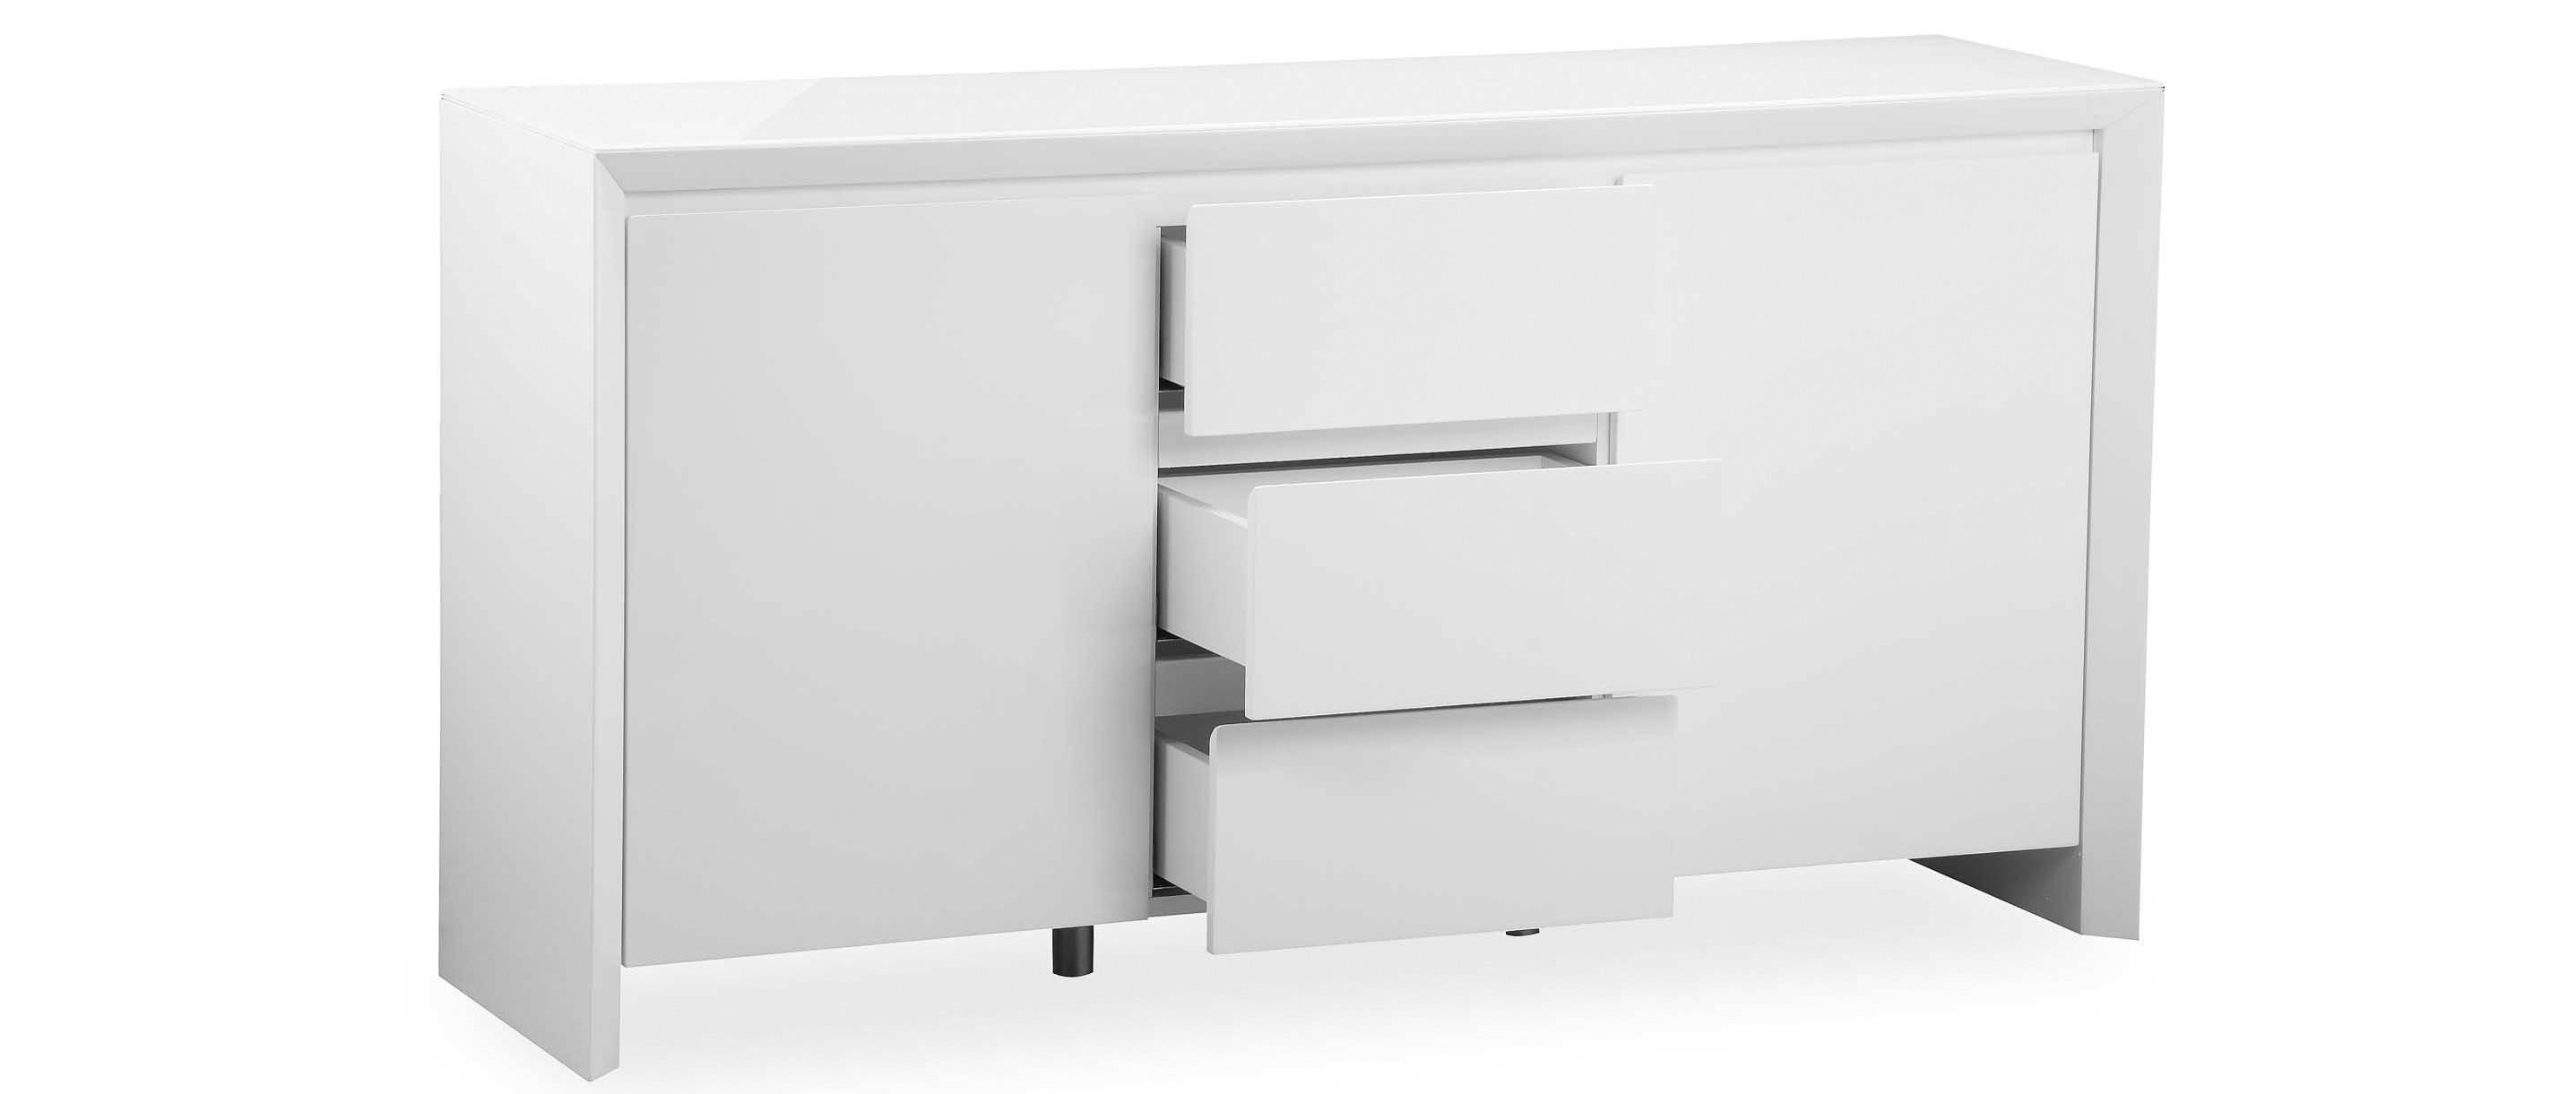 Soho - Large Sideboard - White High Gloss regarding White High Gloss Sideboards (Image 26 of 30)